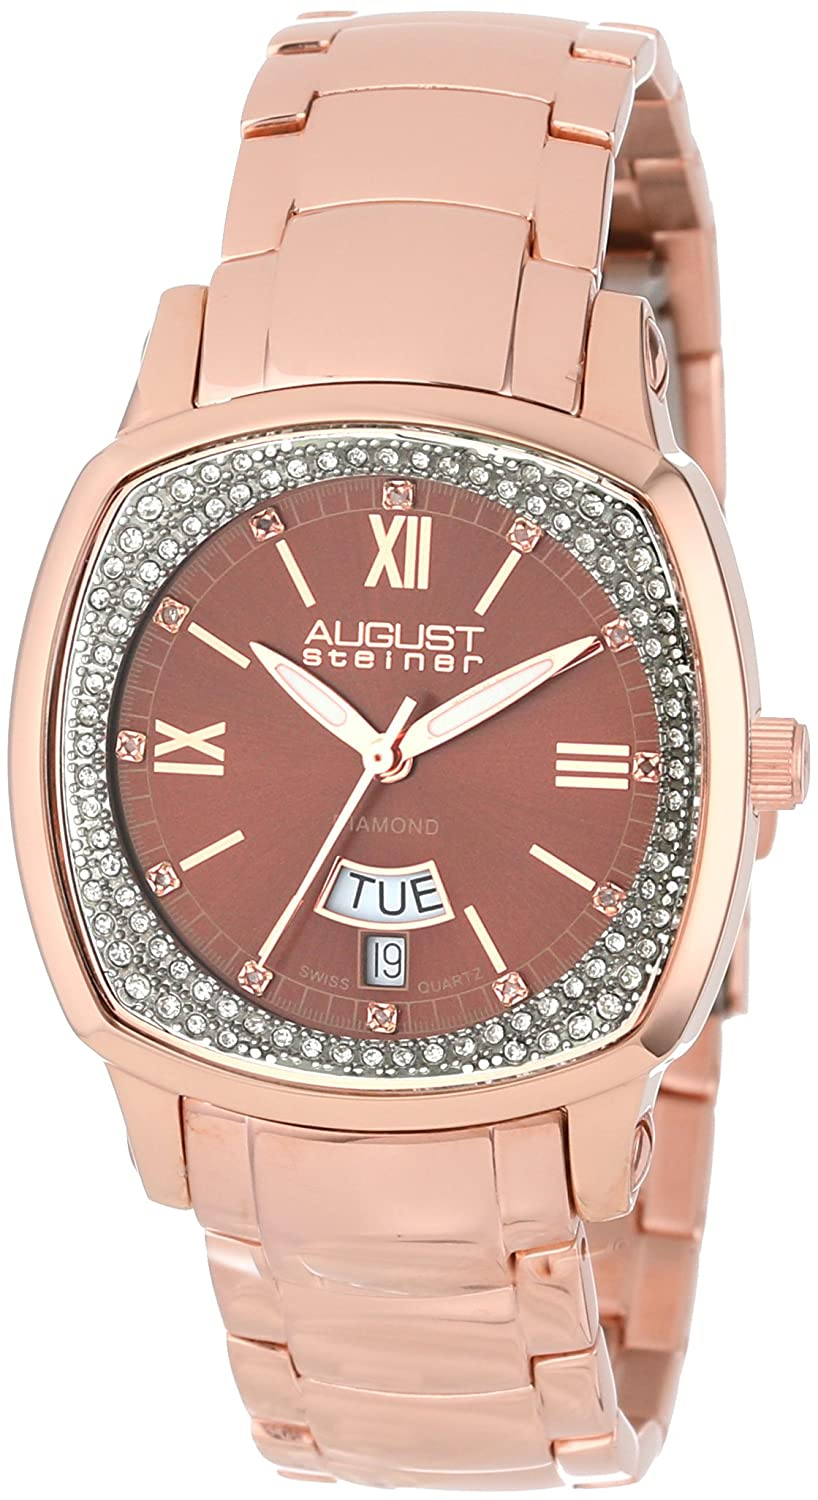 August Steiner Damen 's Day Date Diamond Swiss Quartz Armband Armbanduhr